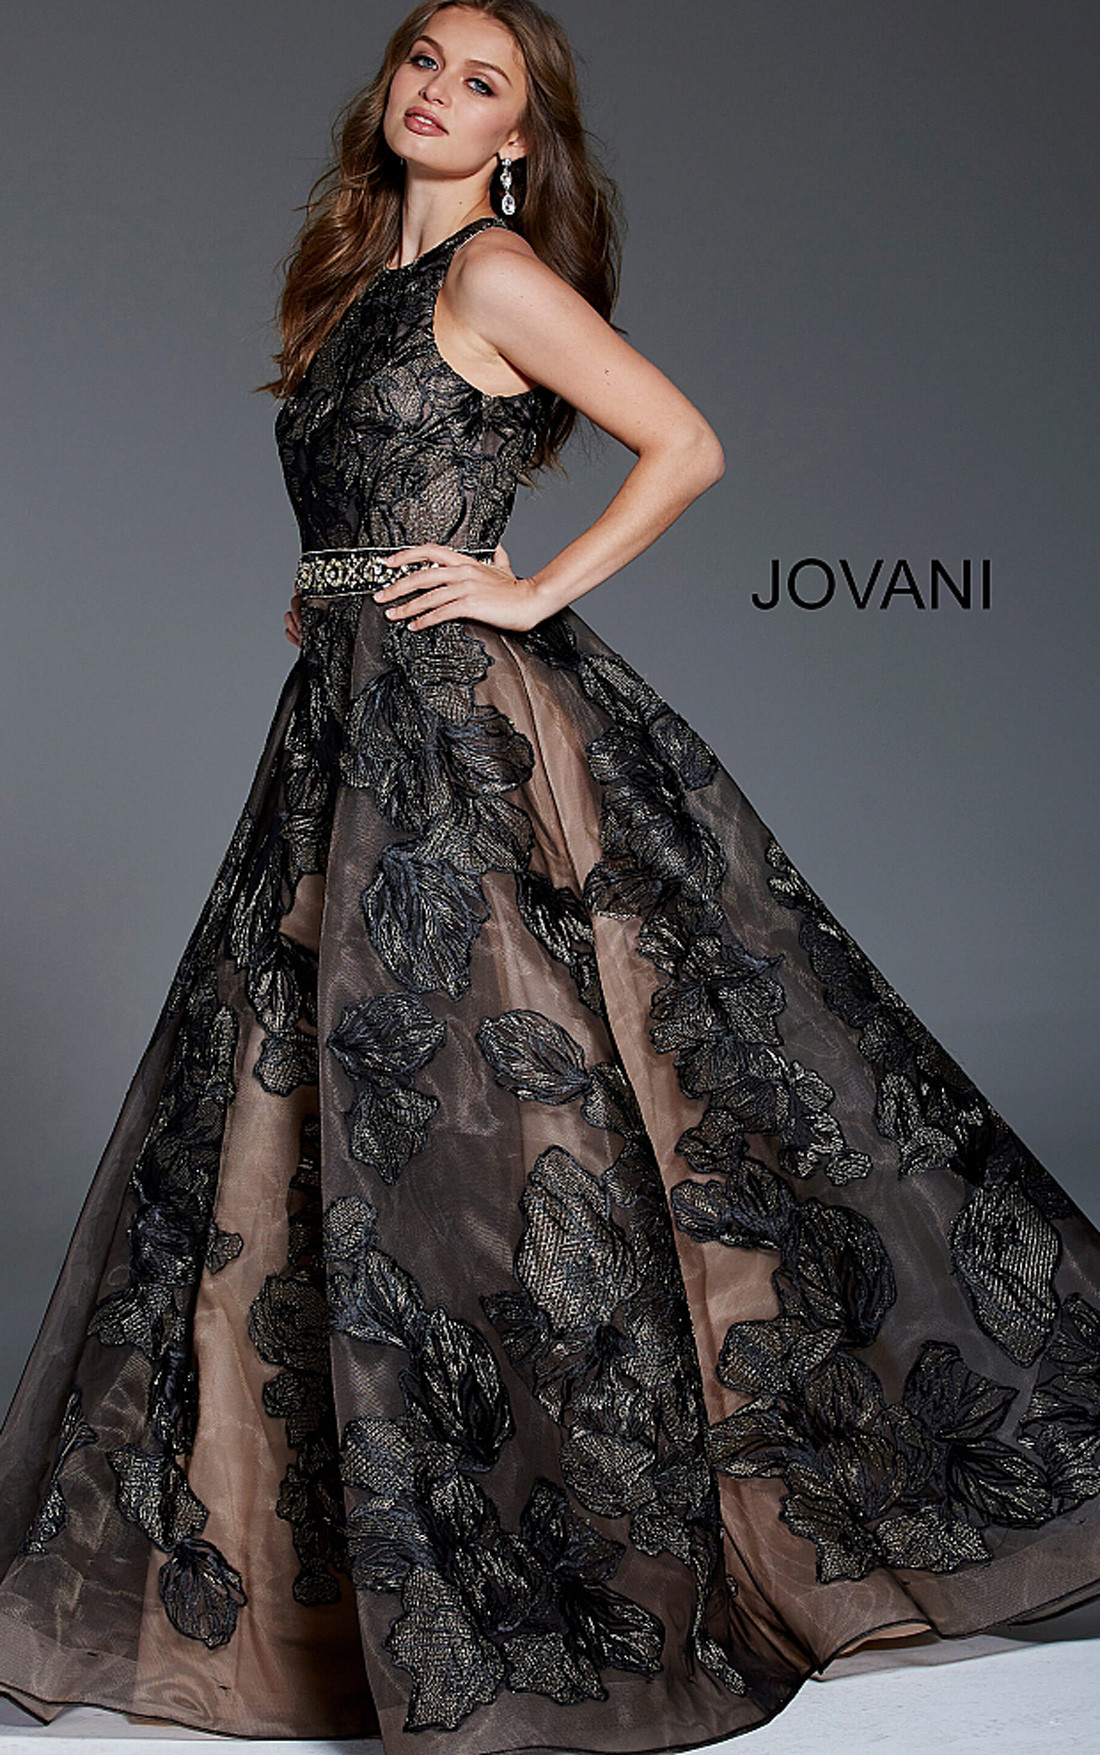 44f7dcfa6aab8 Jovani - Black Floral Sleeveless A-Line Gown (58914) ...